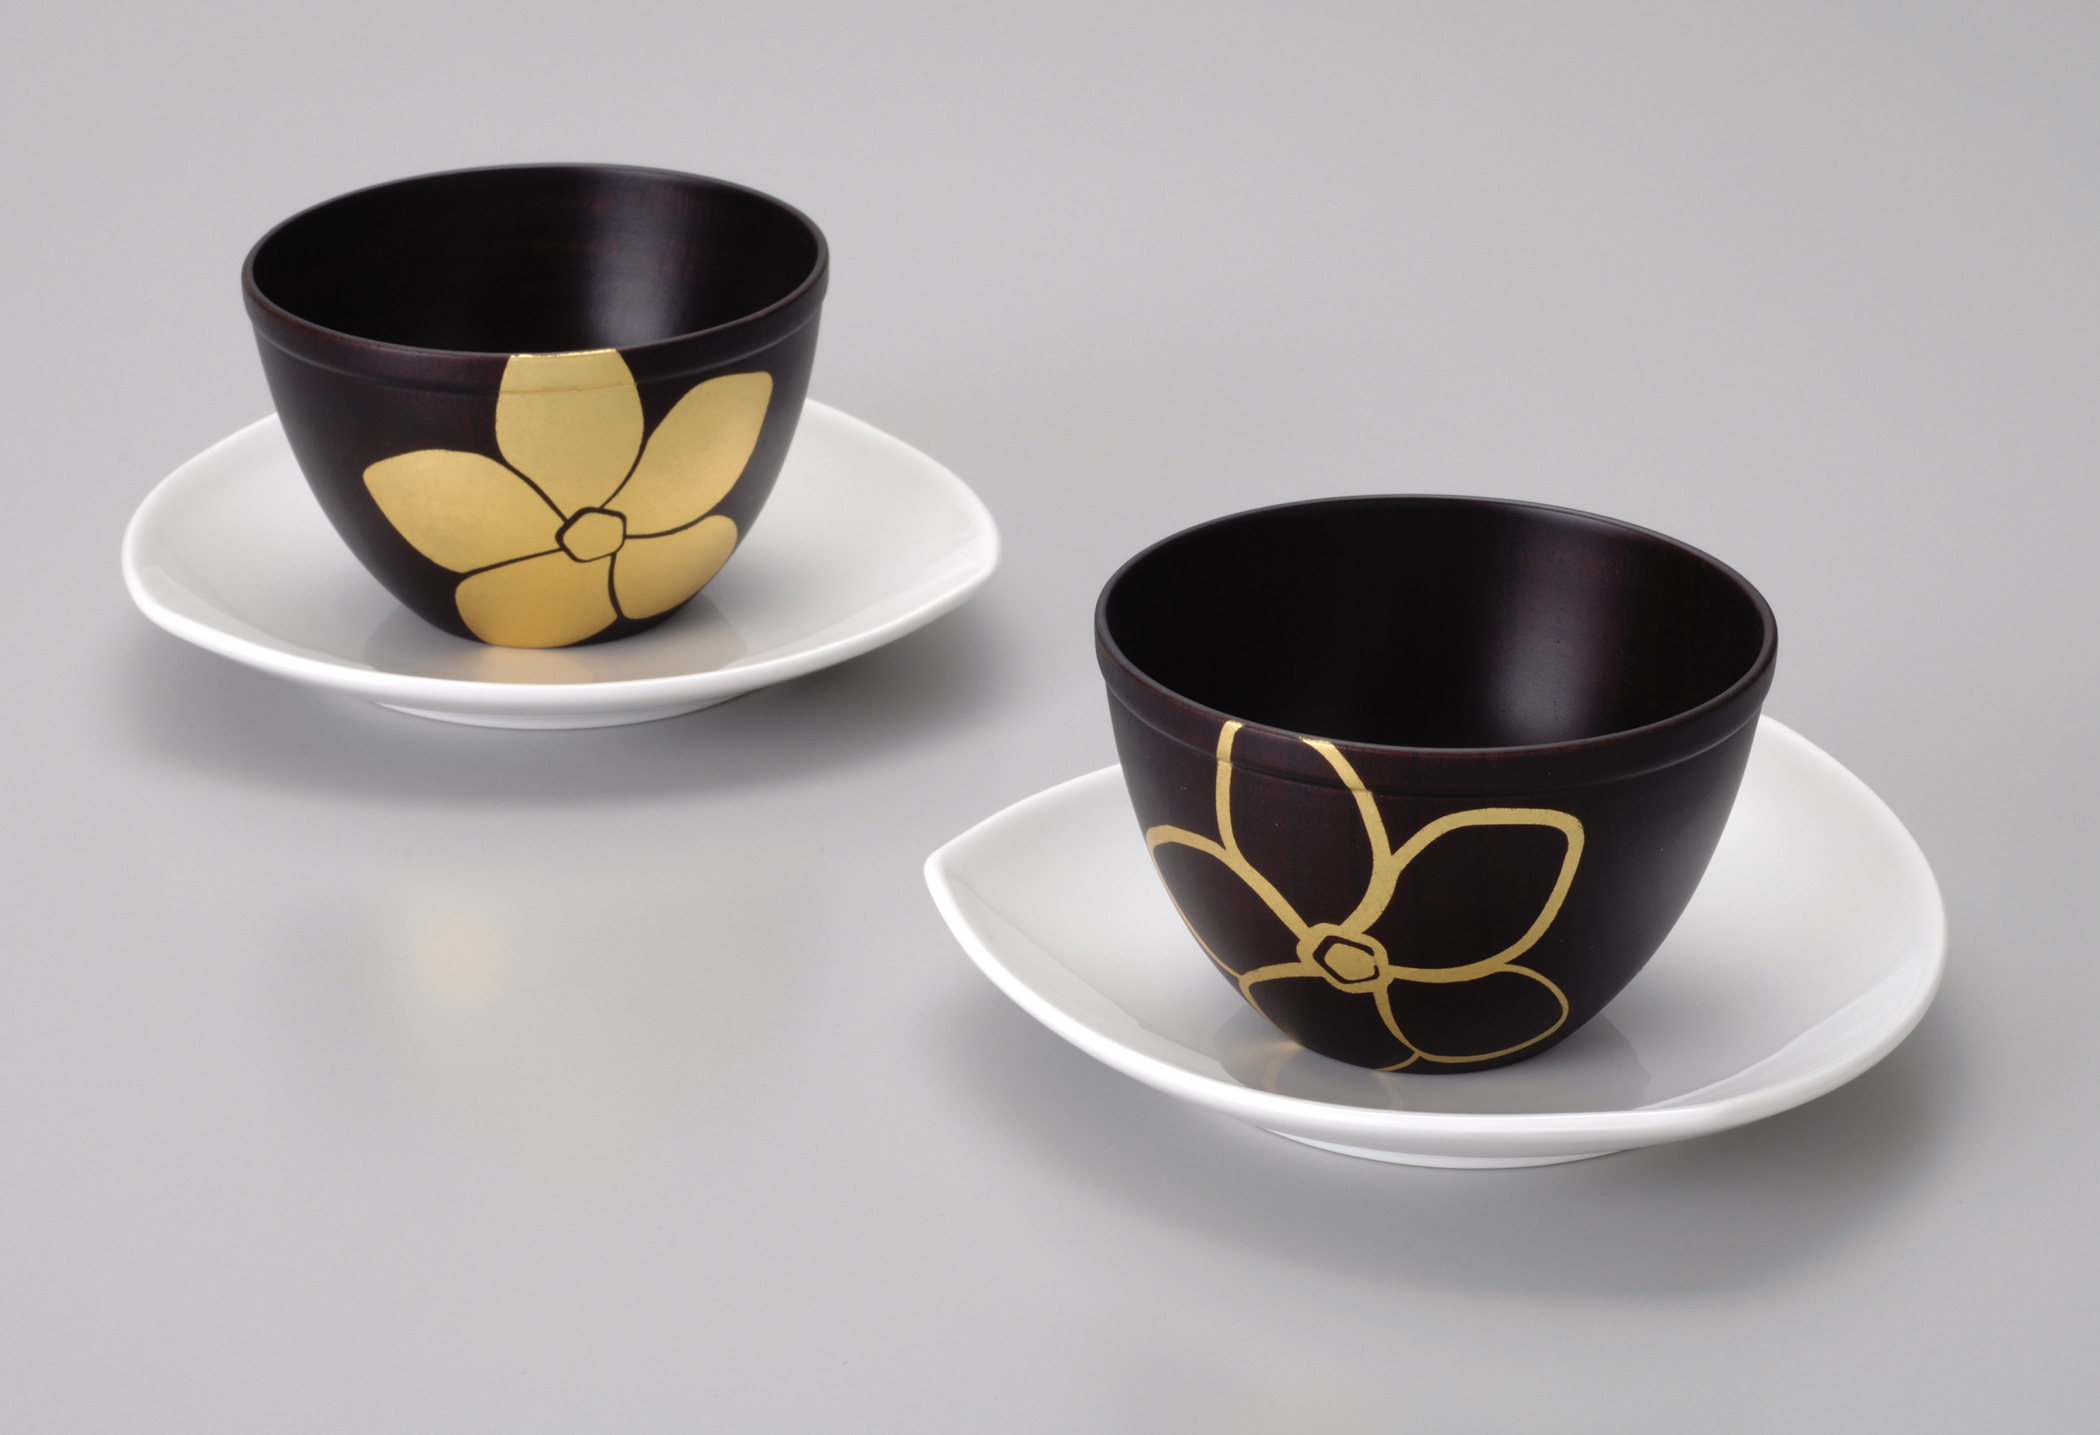 Gold Flower Black Bowl u0026 Plate Set Authentic Kanazawa-haku Gold : ceramic plates and bowls - pezcame.com